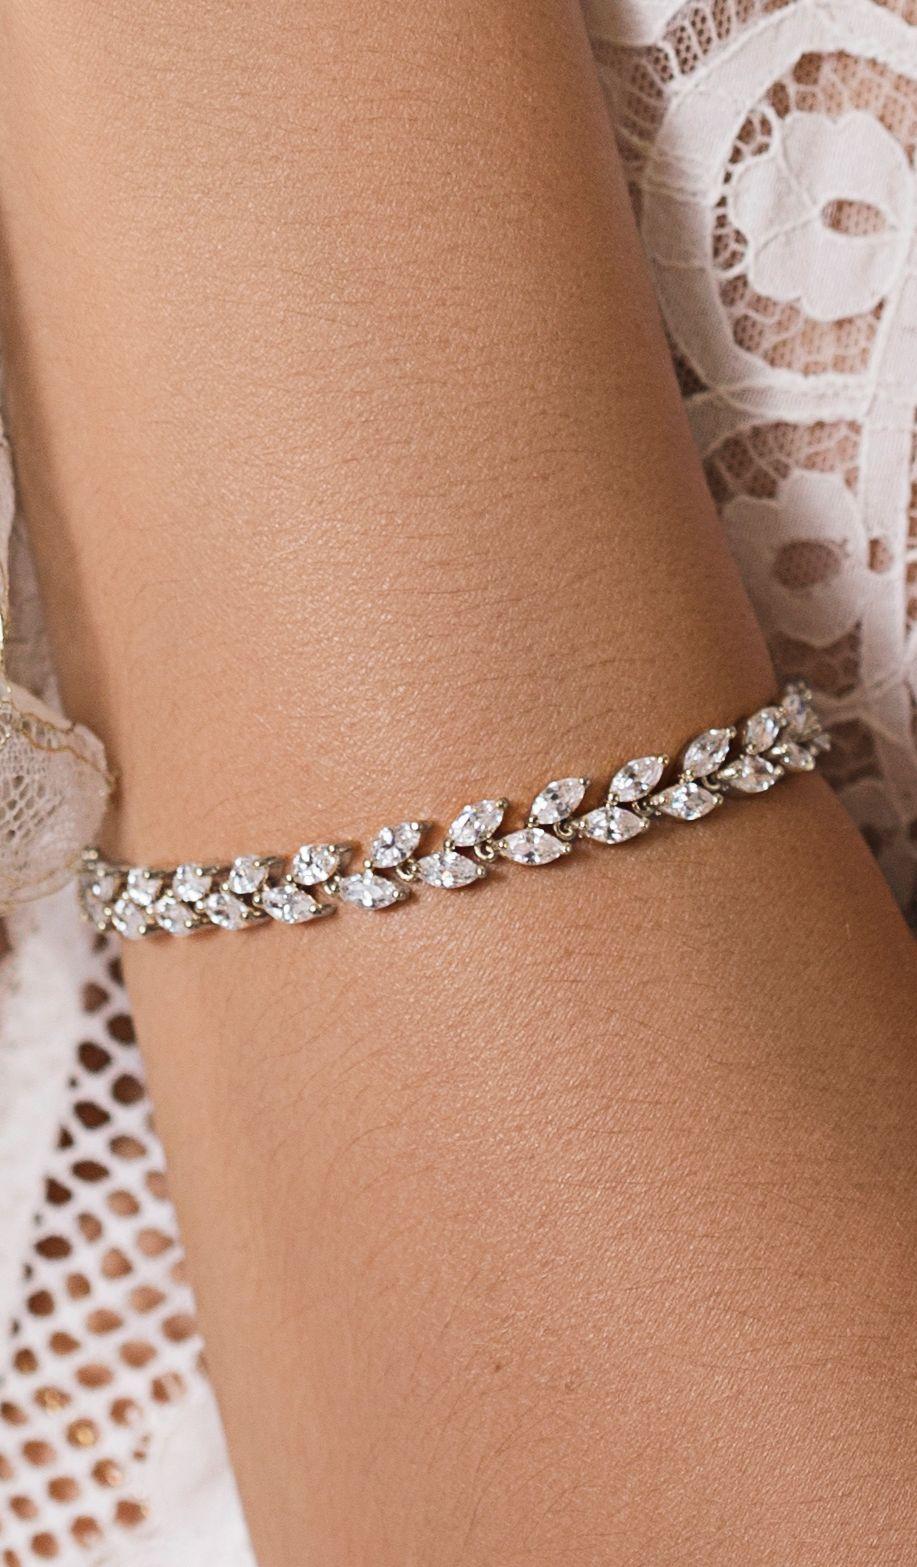 117eacb463 Silver crystal leaf bracelet made with cubic zirconia and 18K white gold |  tennis bracelet,